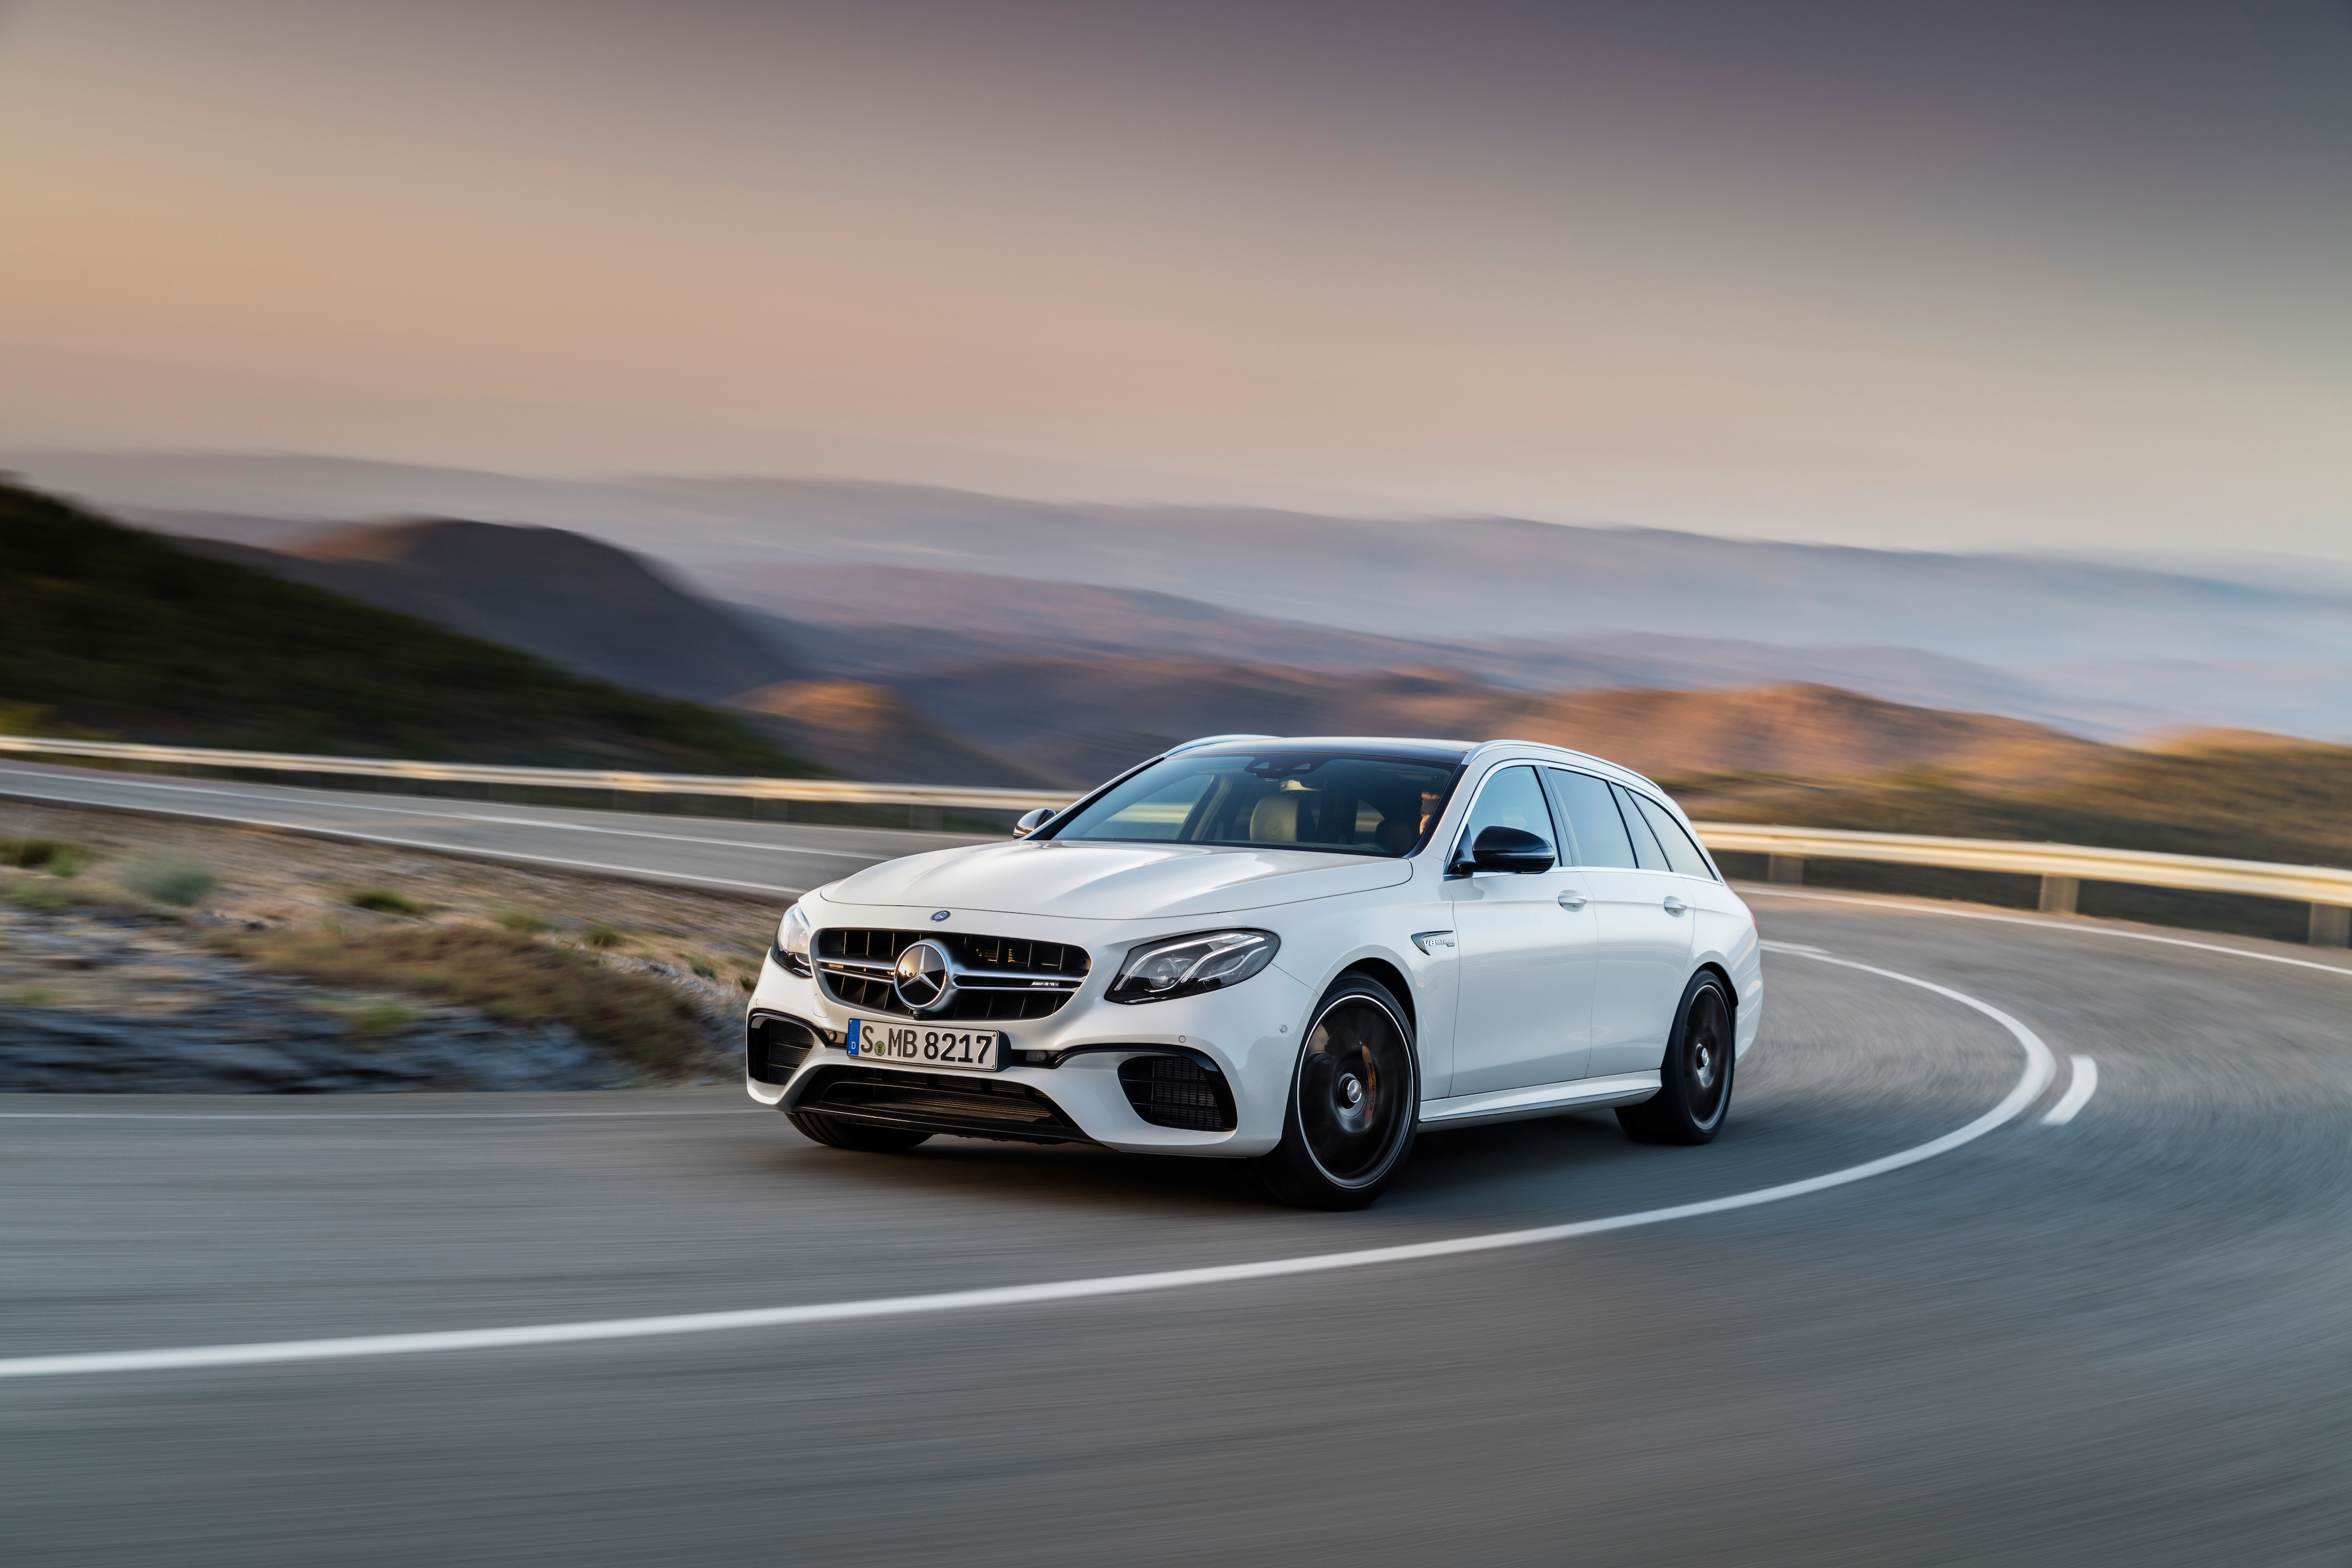 2018 Mercedes-Benz E63 AMG S Wagon